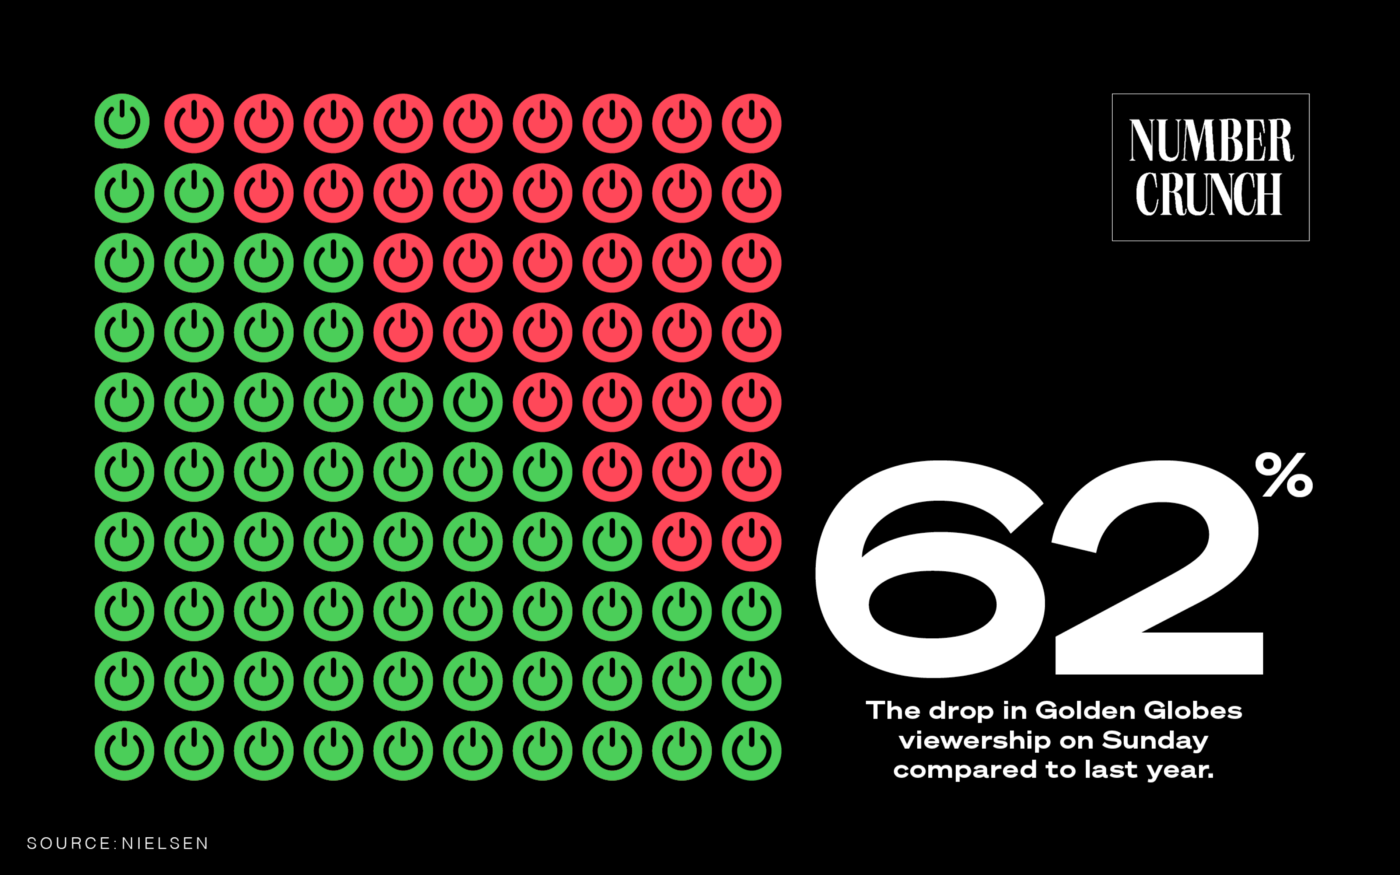 """The Number Crunch logo next to an infographic showing 62 out of 100 power button symbols as green. There is text next to the infographic which states """"62%: The drop in Golden Globes viewership on Sunday compared to last year. Source: Nielsen"""""""